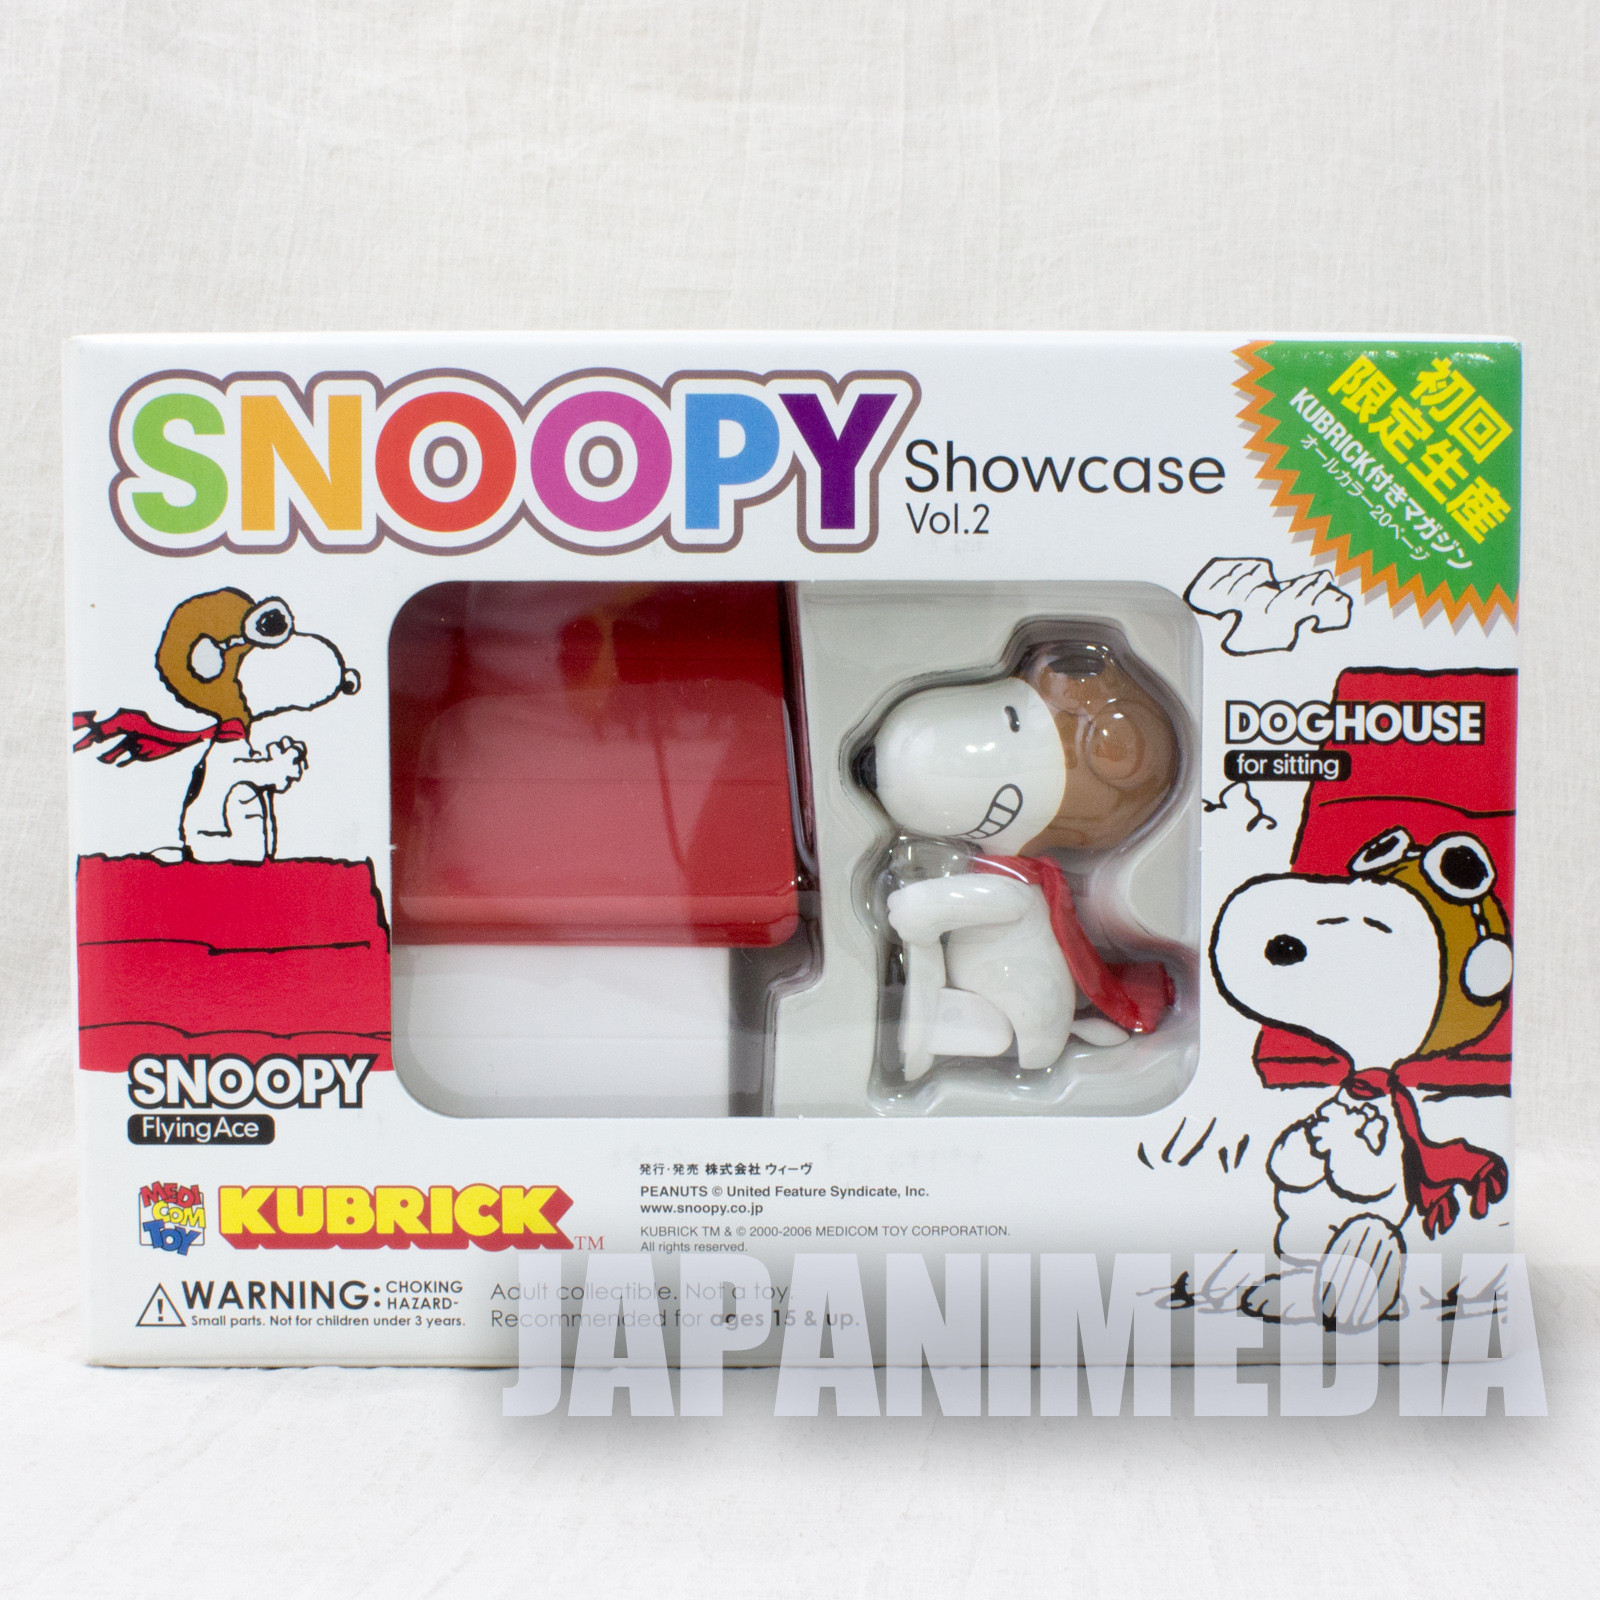 Snoopy Flying Ace Dog House Kubrick Showcase Vol.2 Medicom Toy Figure JAPAN